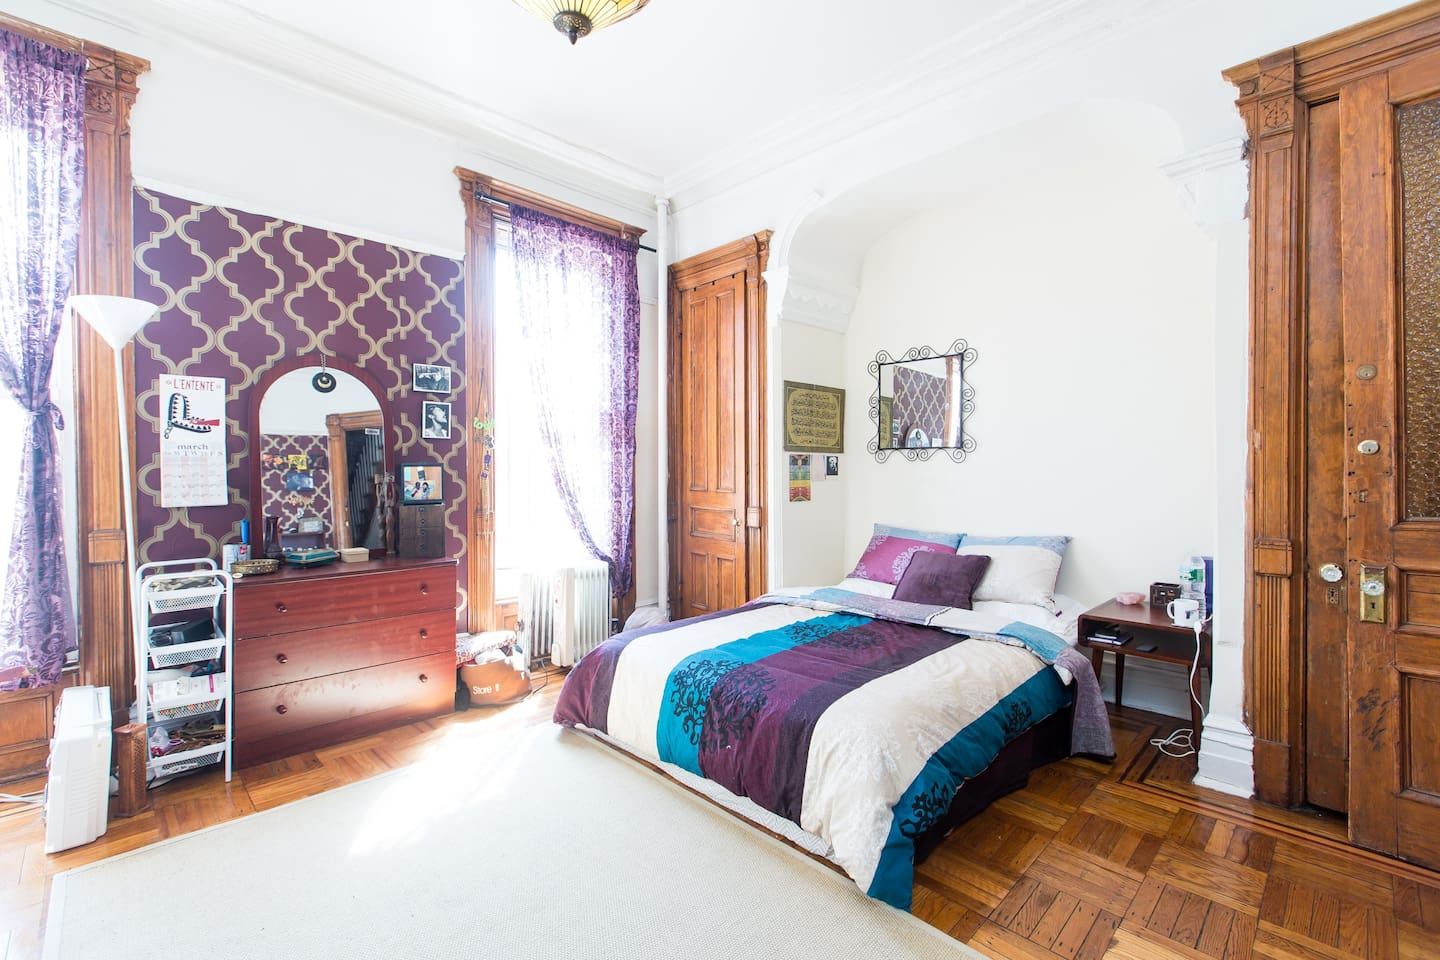 The decor has changed, the room is beautifully furnished and has a more zen feel upon your arrival. Huge with Bright Sun, Garden Views, Two Large Closets, Queen Bed, Desk, Eat-In Bistro style table, Victorian and Modern Details! Feels like your own studio